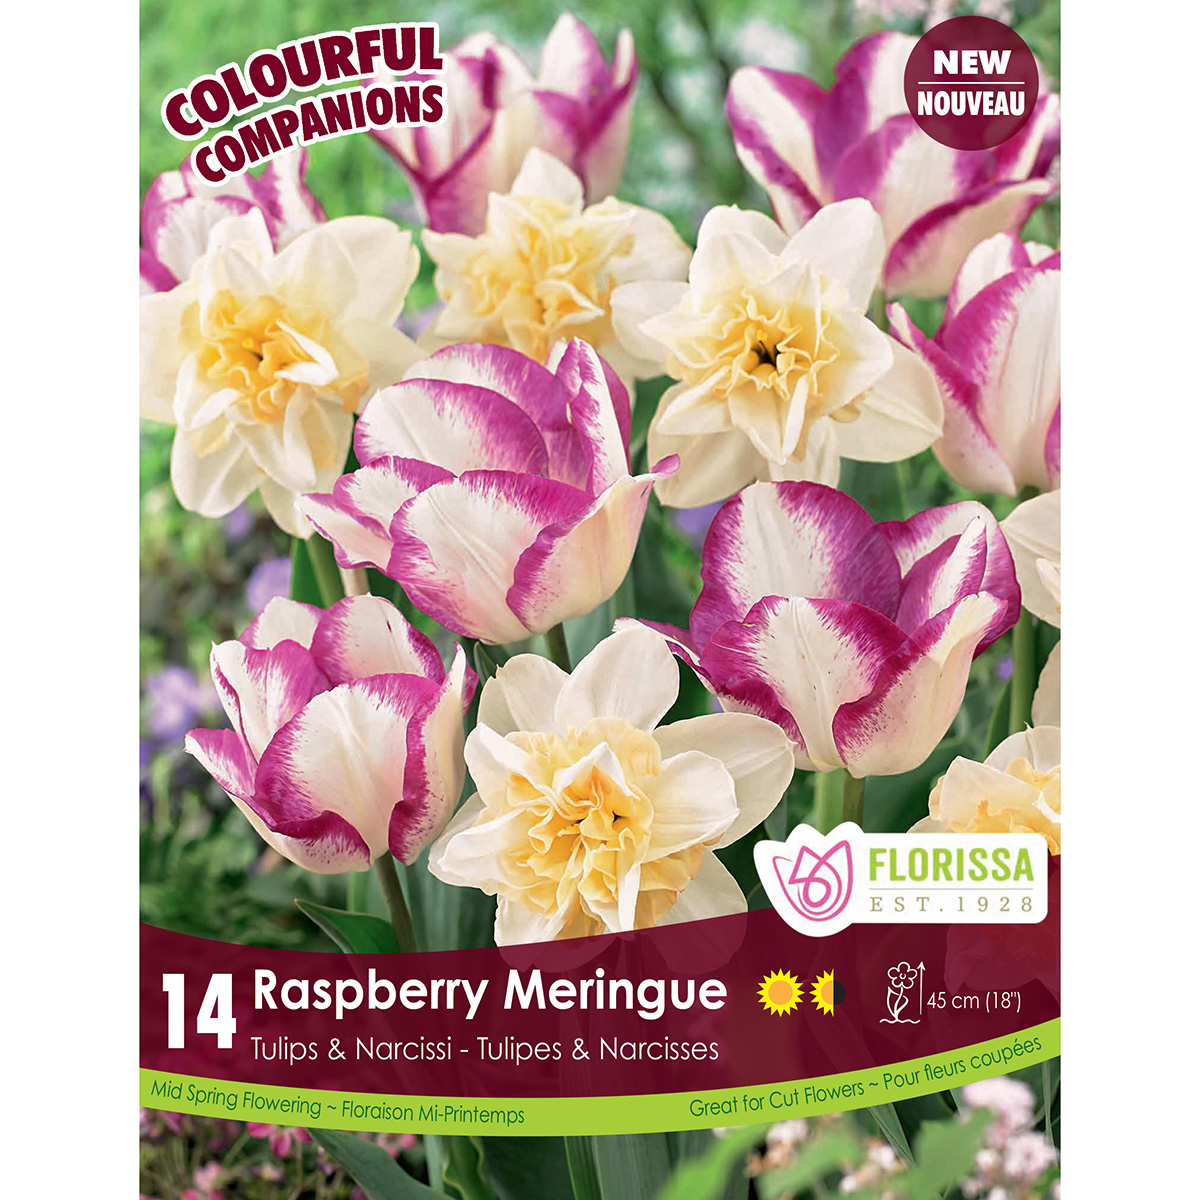 Colourful Companions 'Raspberry Meringue' Bulbs